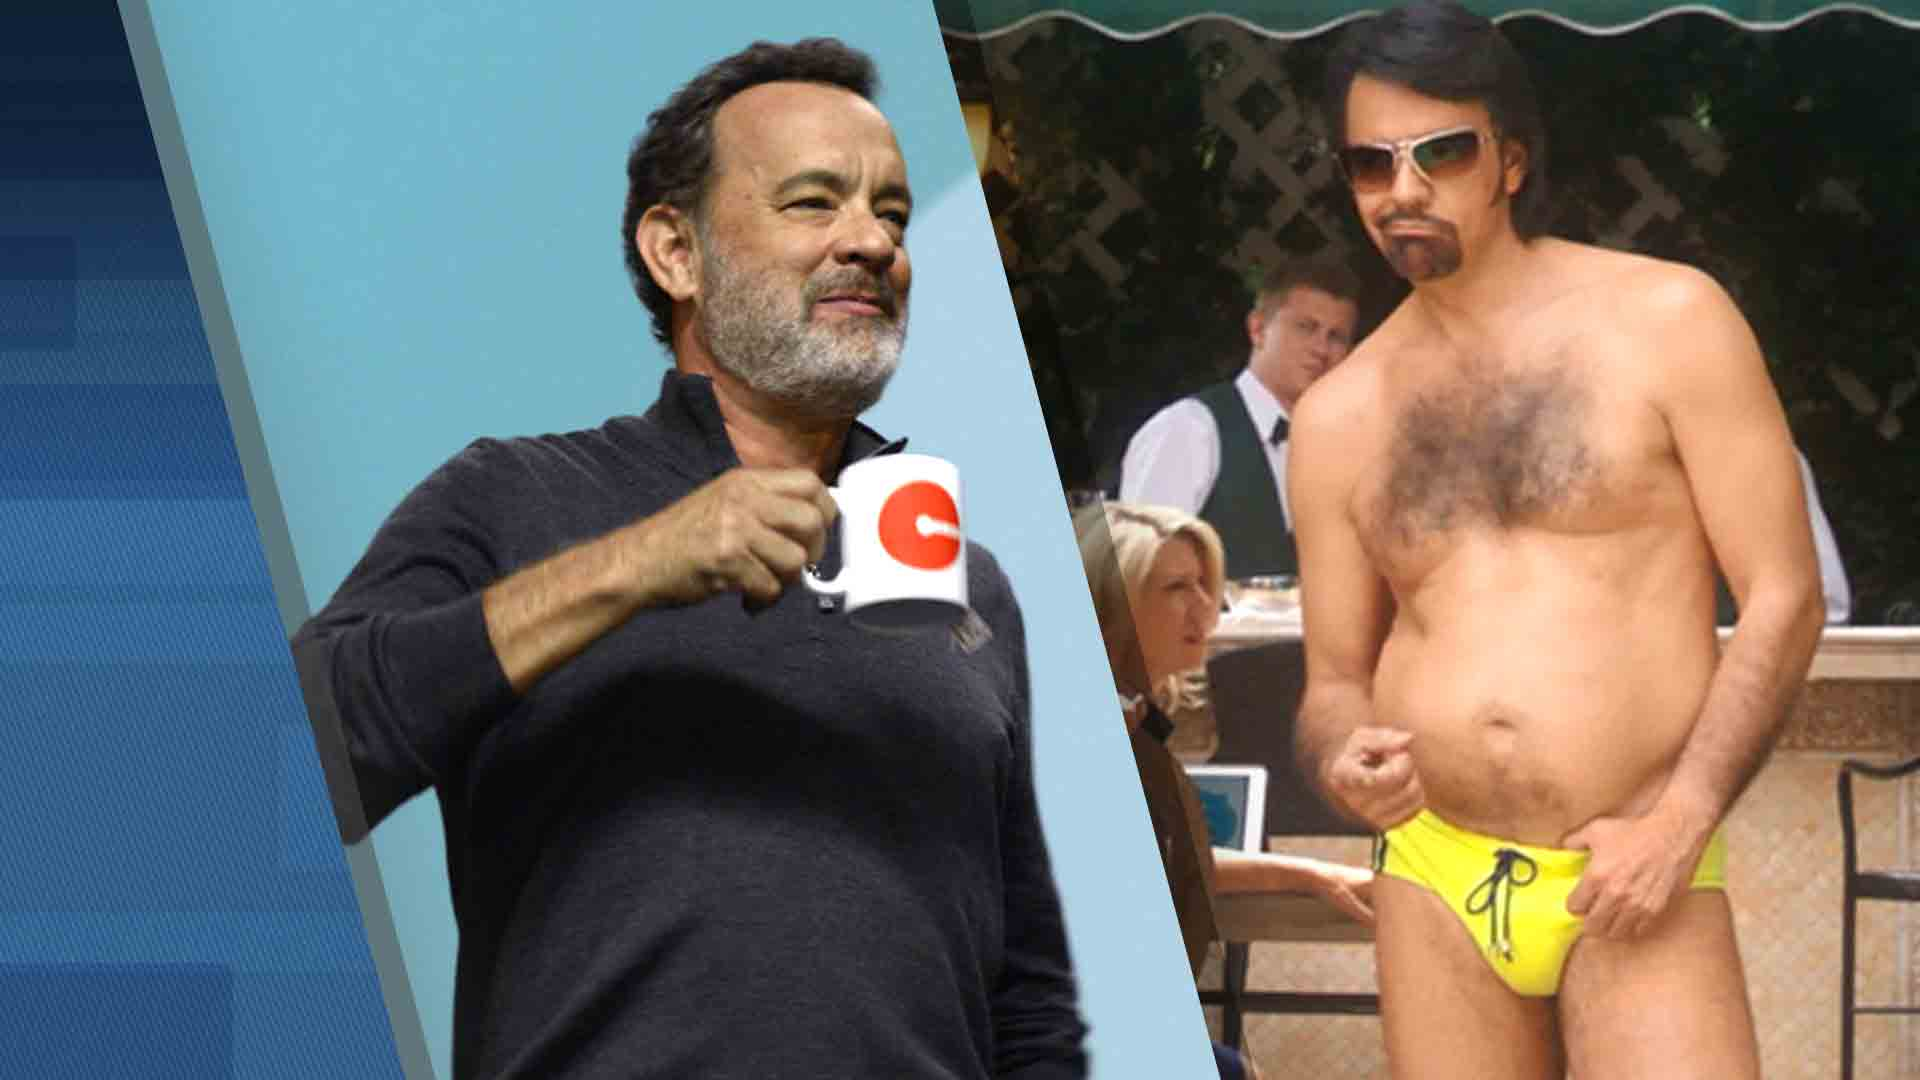 How To Be A Latin Lover: Weekend Ticket The Circle, How To Be A Latin Lover,  Sleight  Fandango